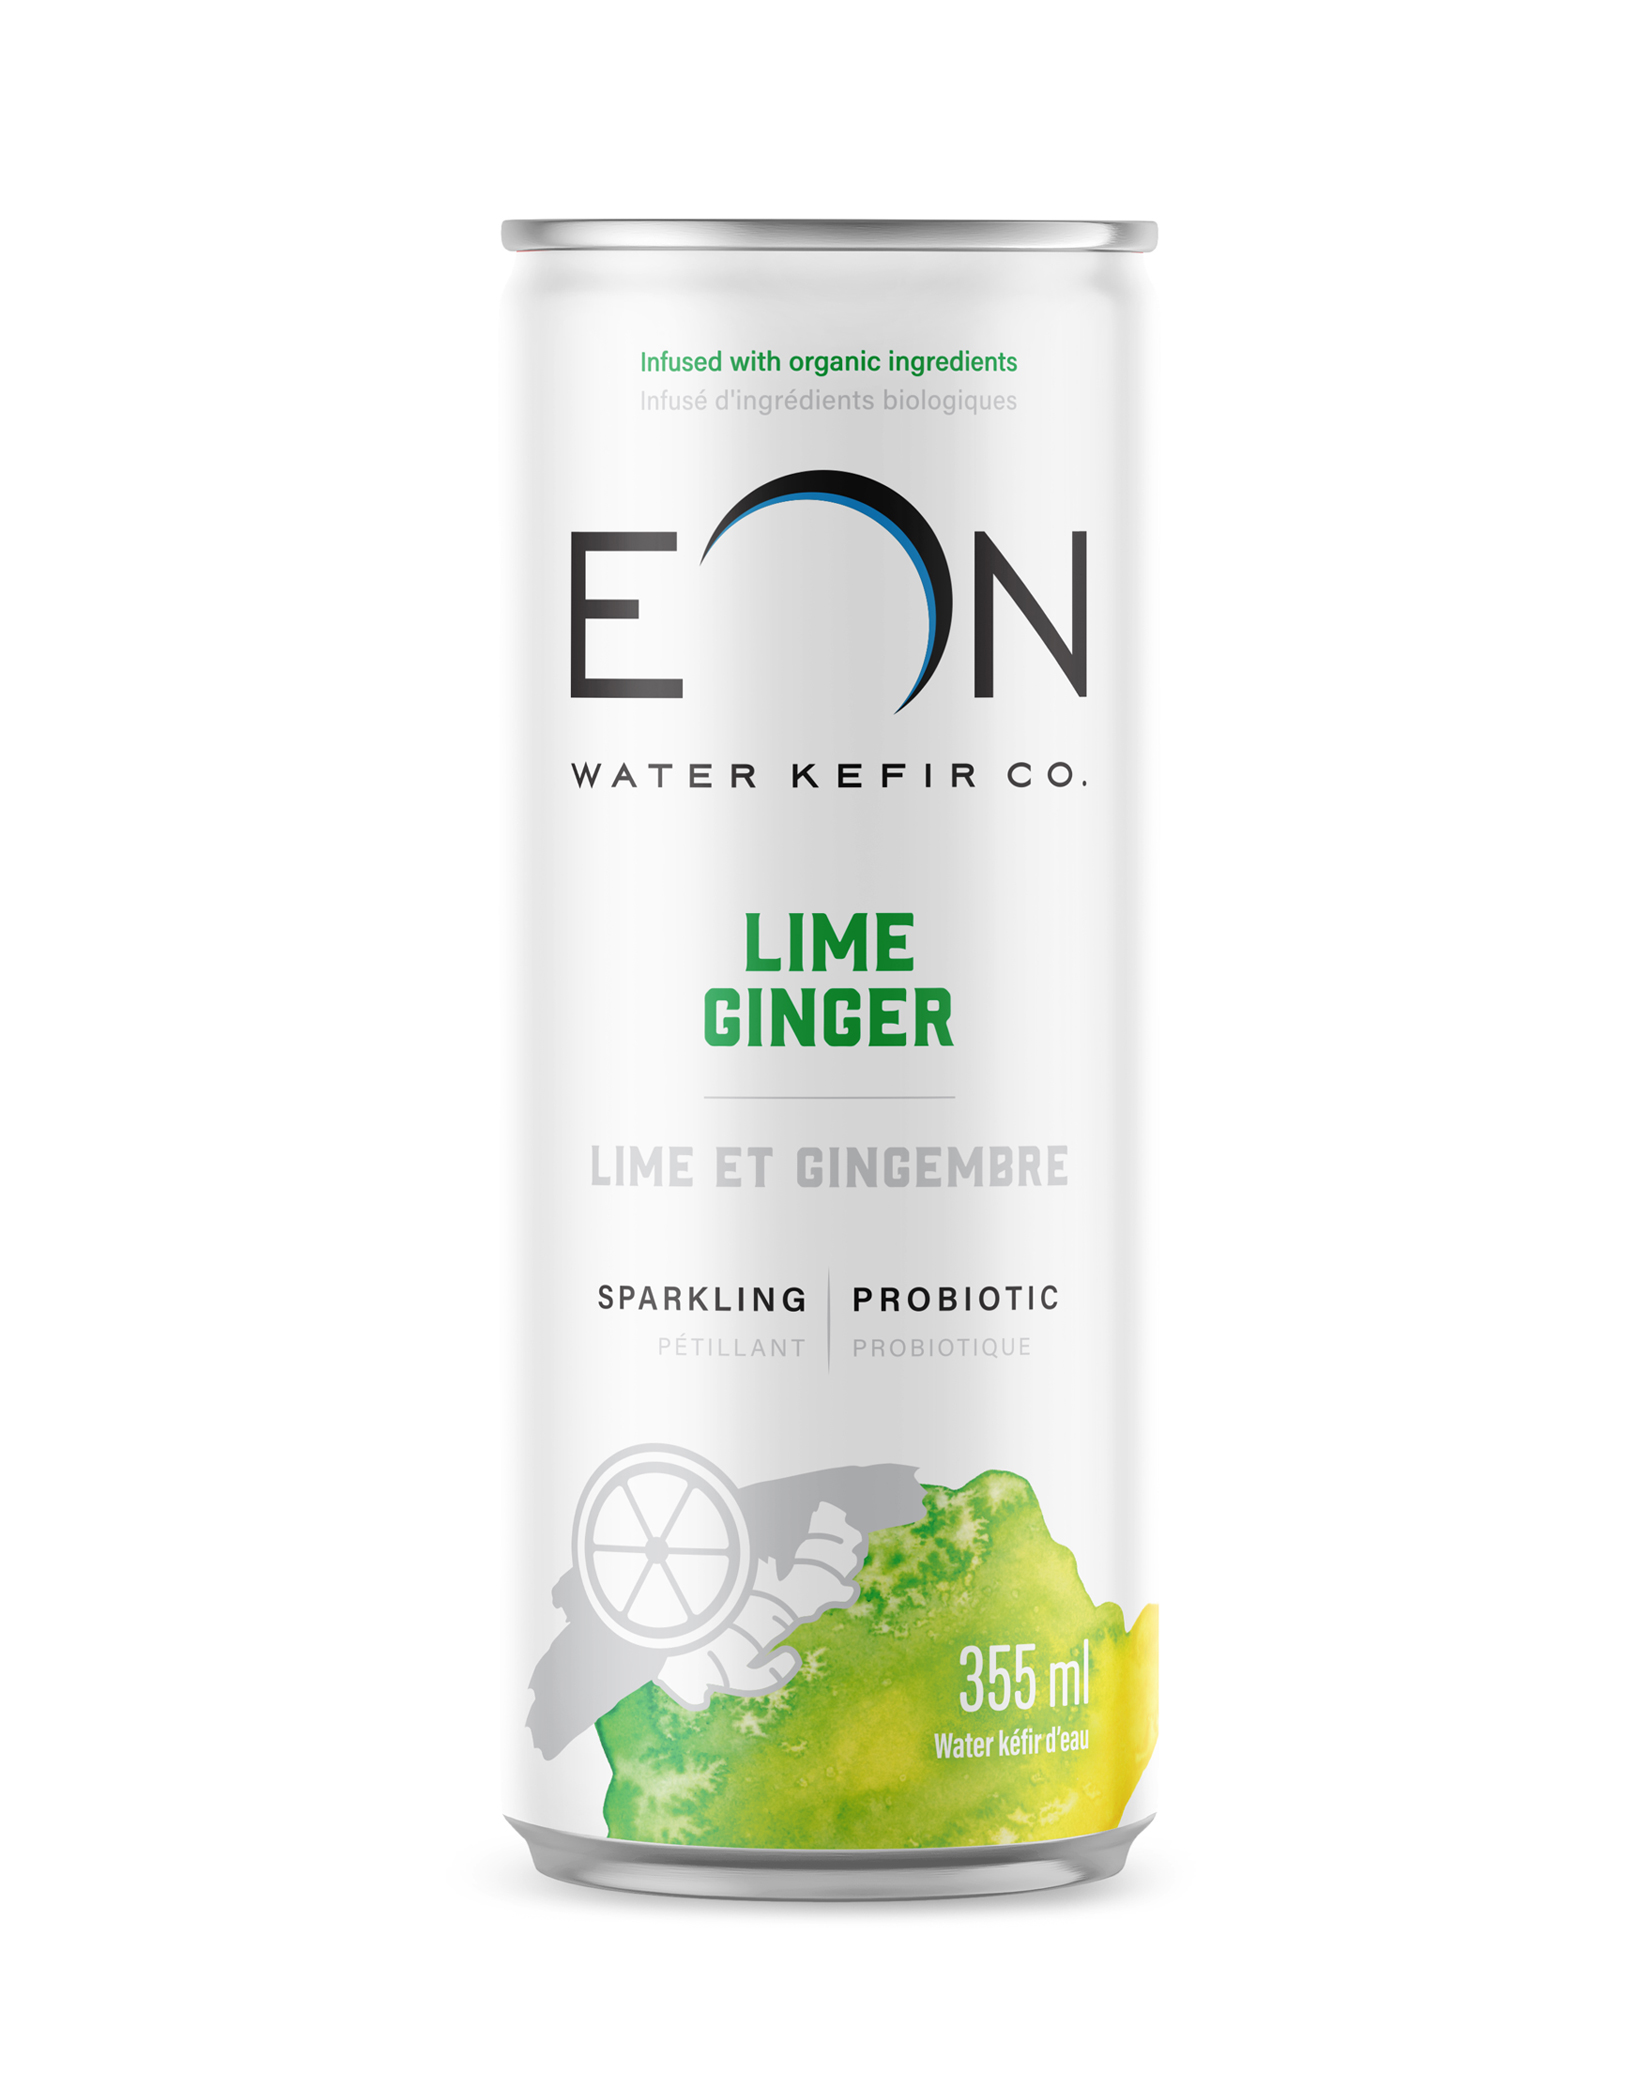 eon water lime ginger can design